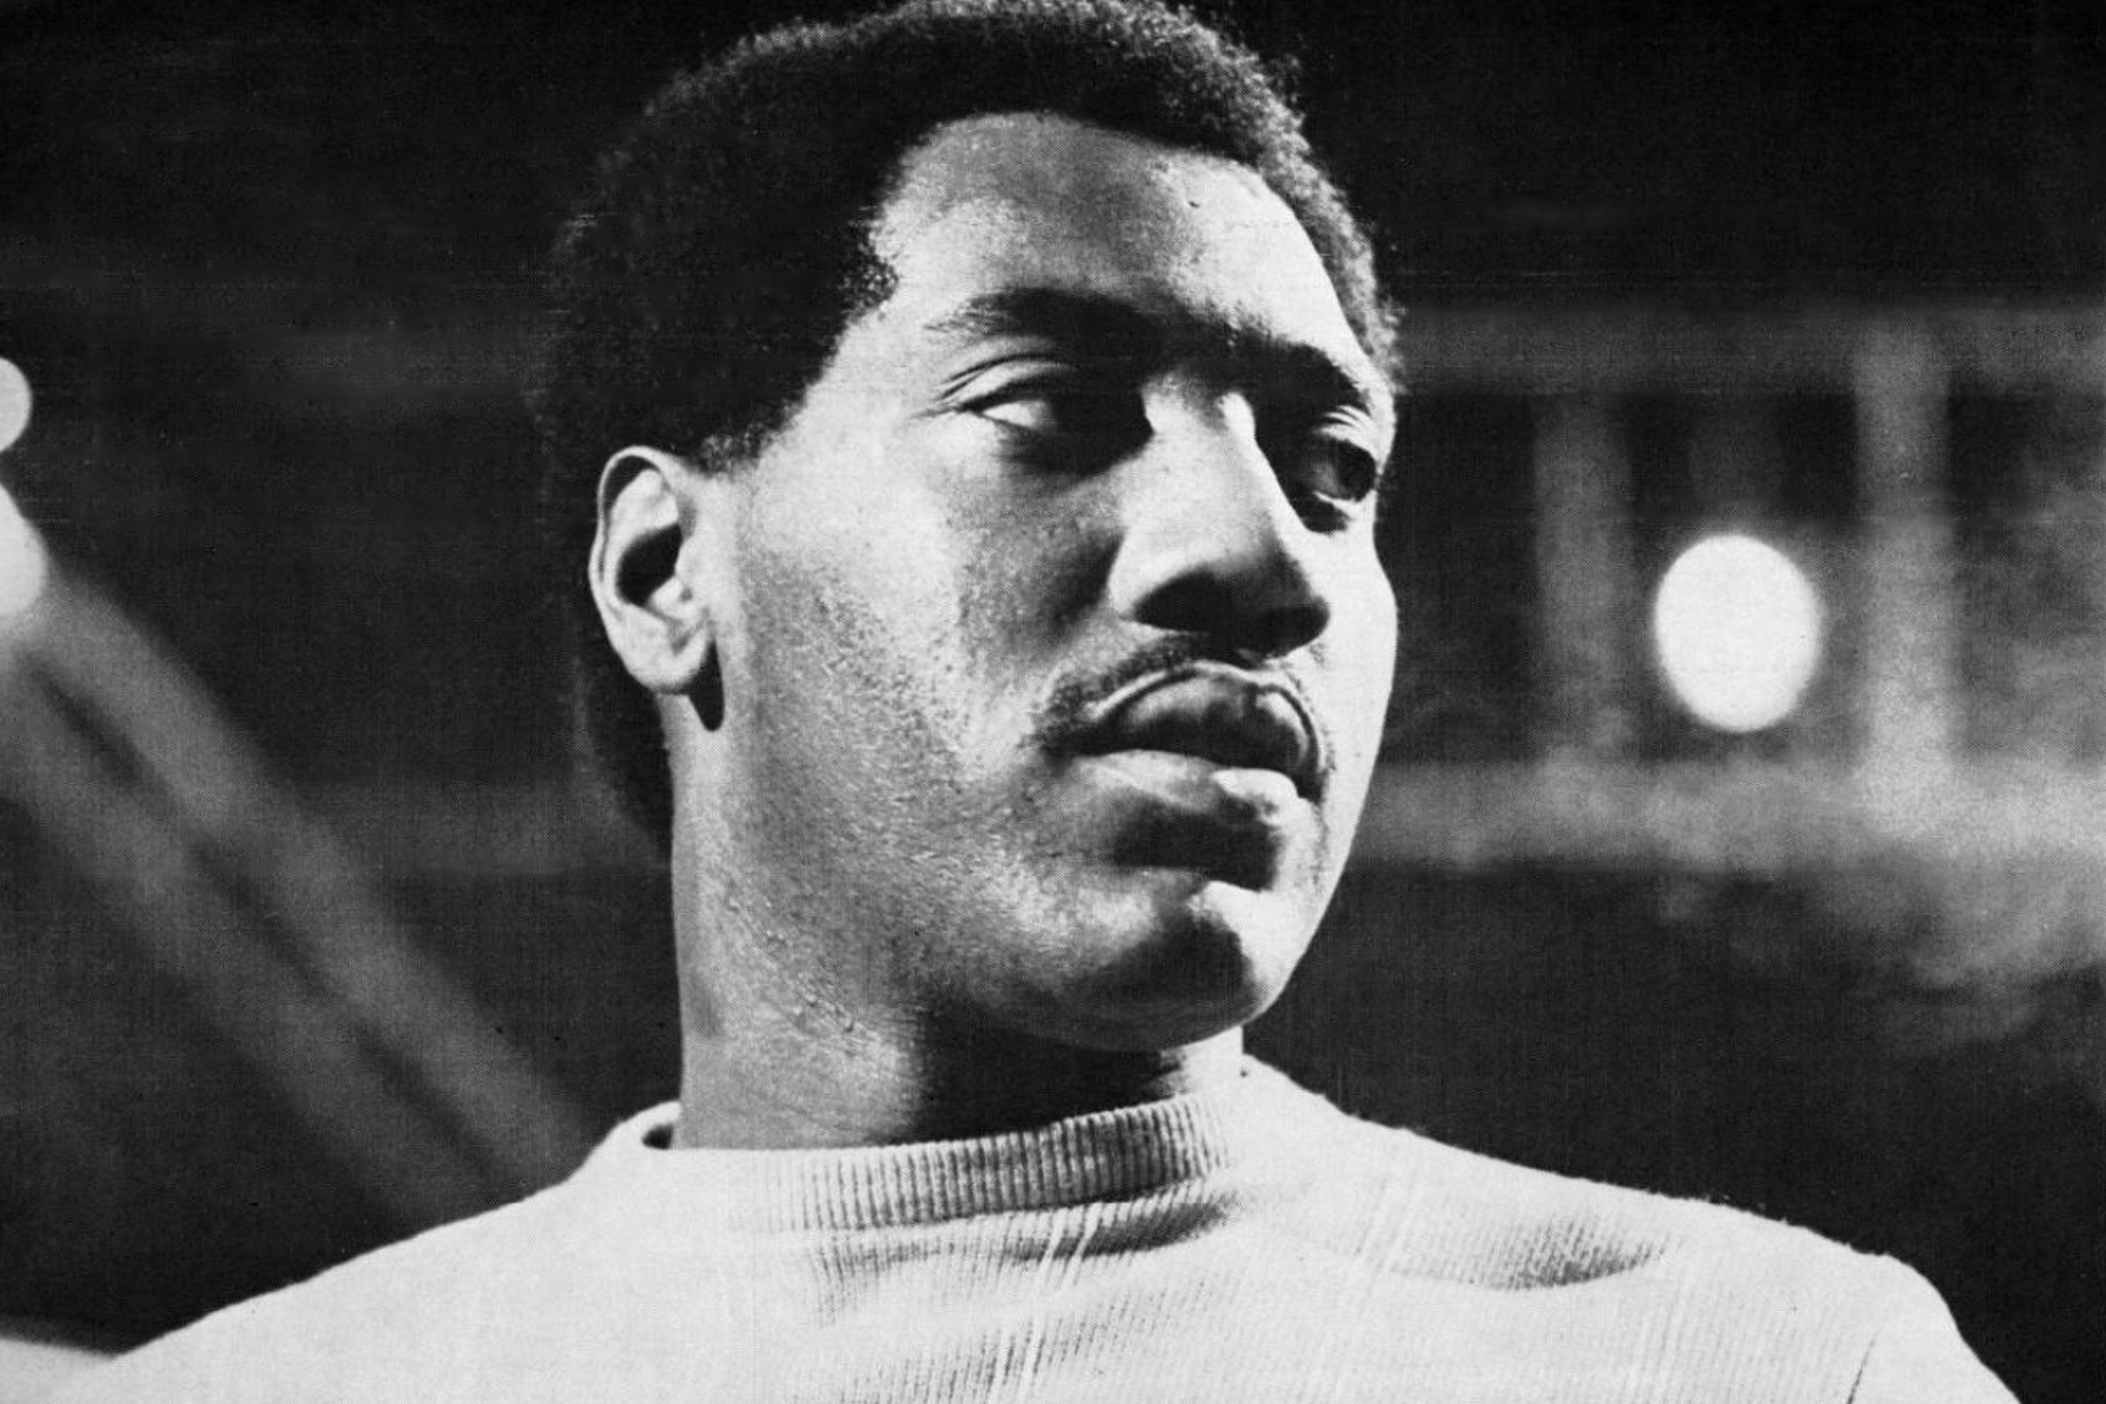 A black and white photo of Otis Redding, looking off-camera to the right, wearing a light sweater.